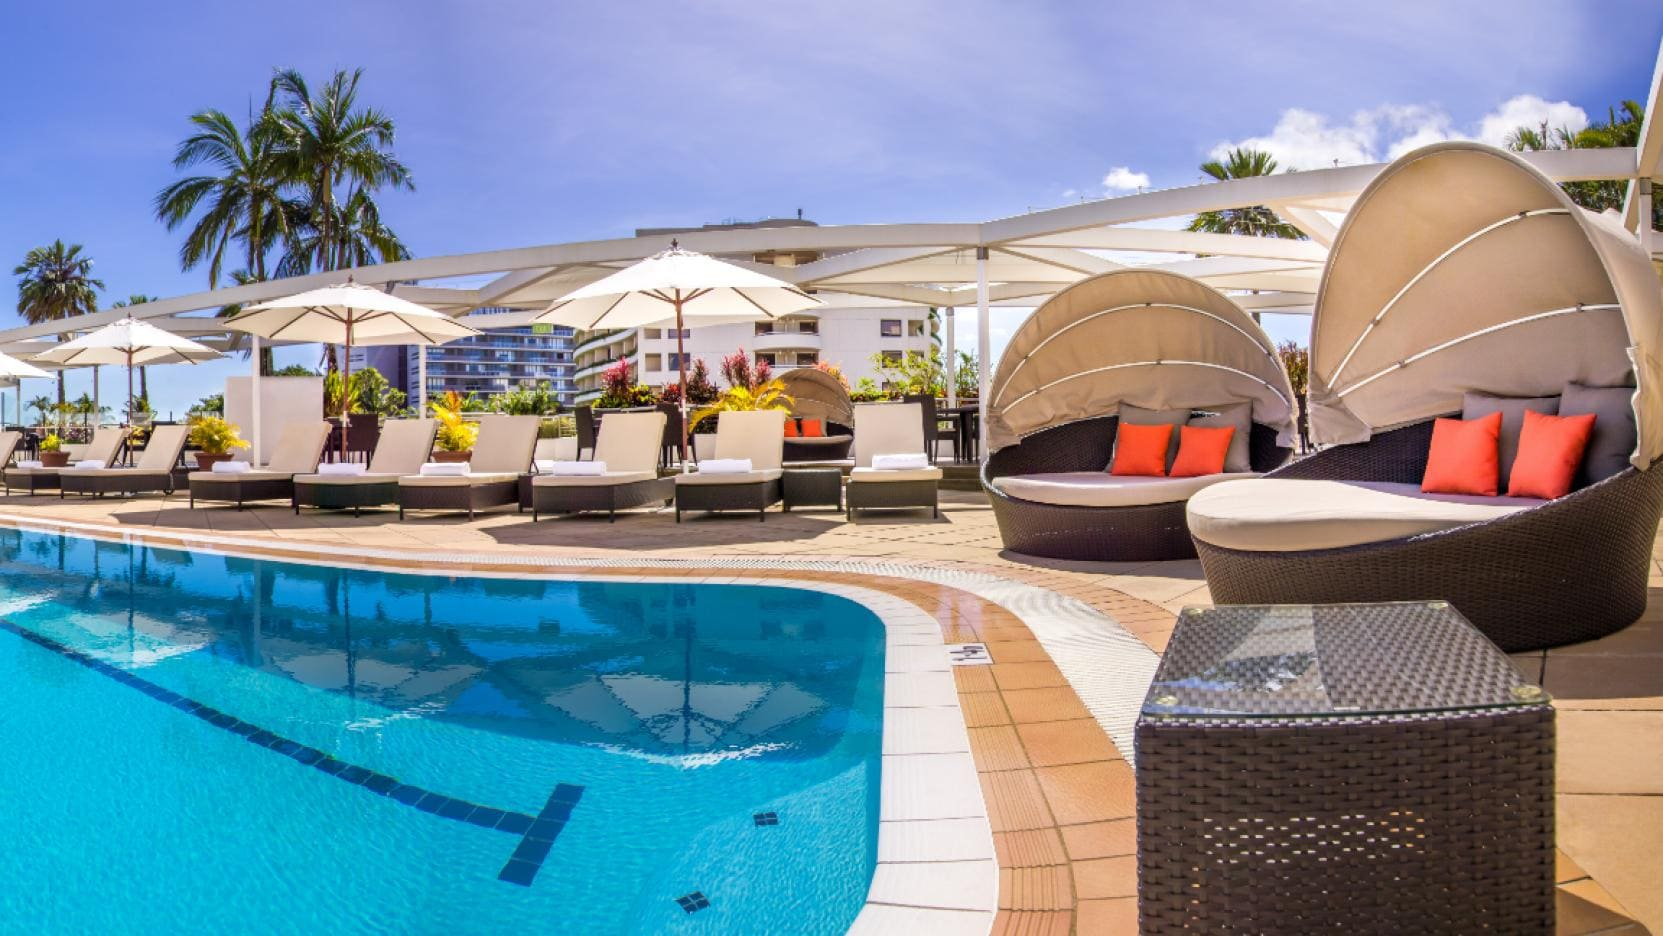 Pullman Reef Hotel and Casino, Cairns, QLD. © Pullman Hotels & Resorts